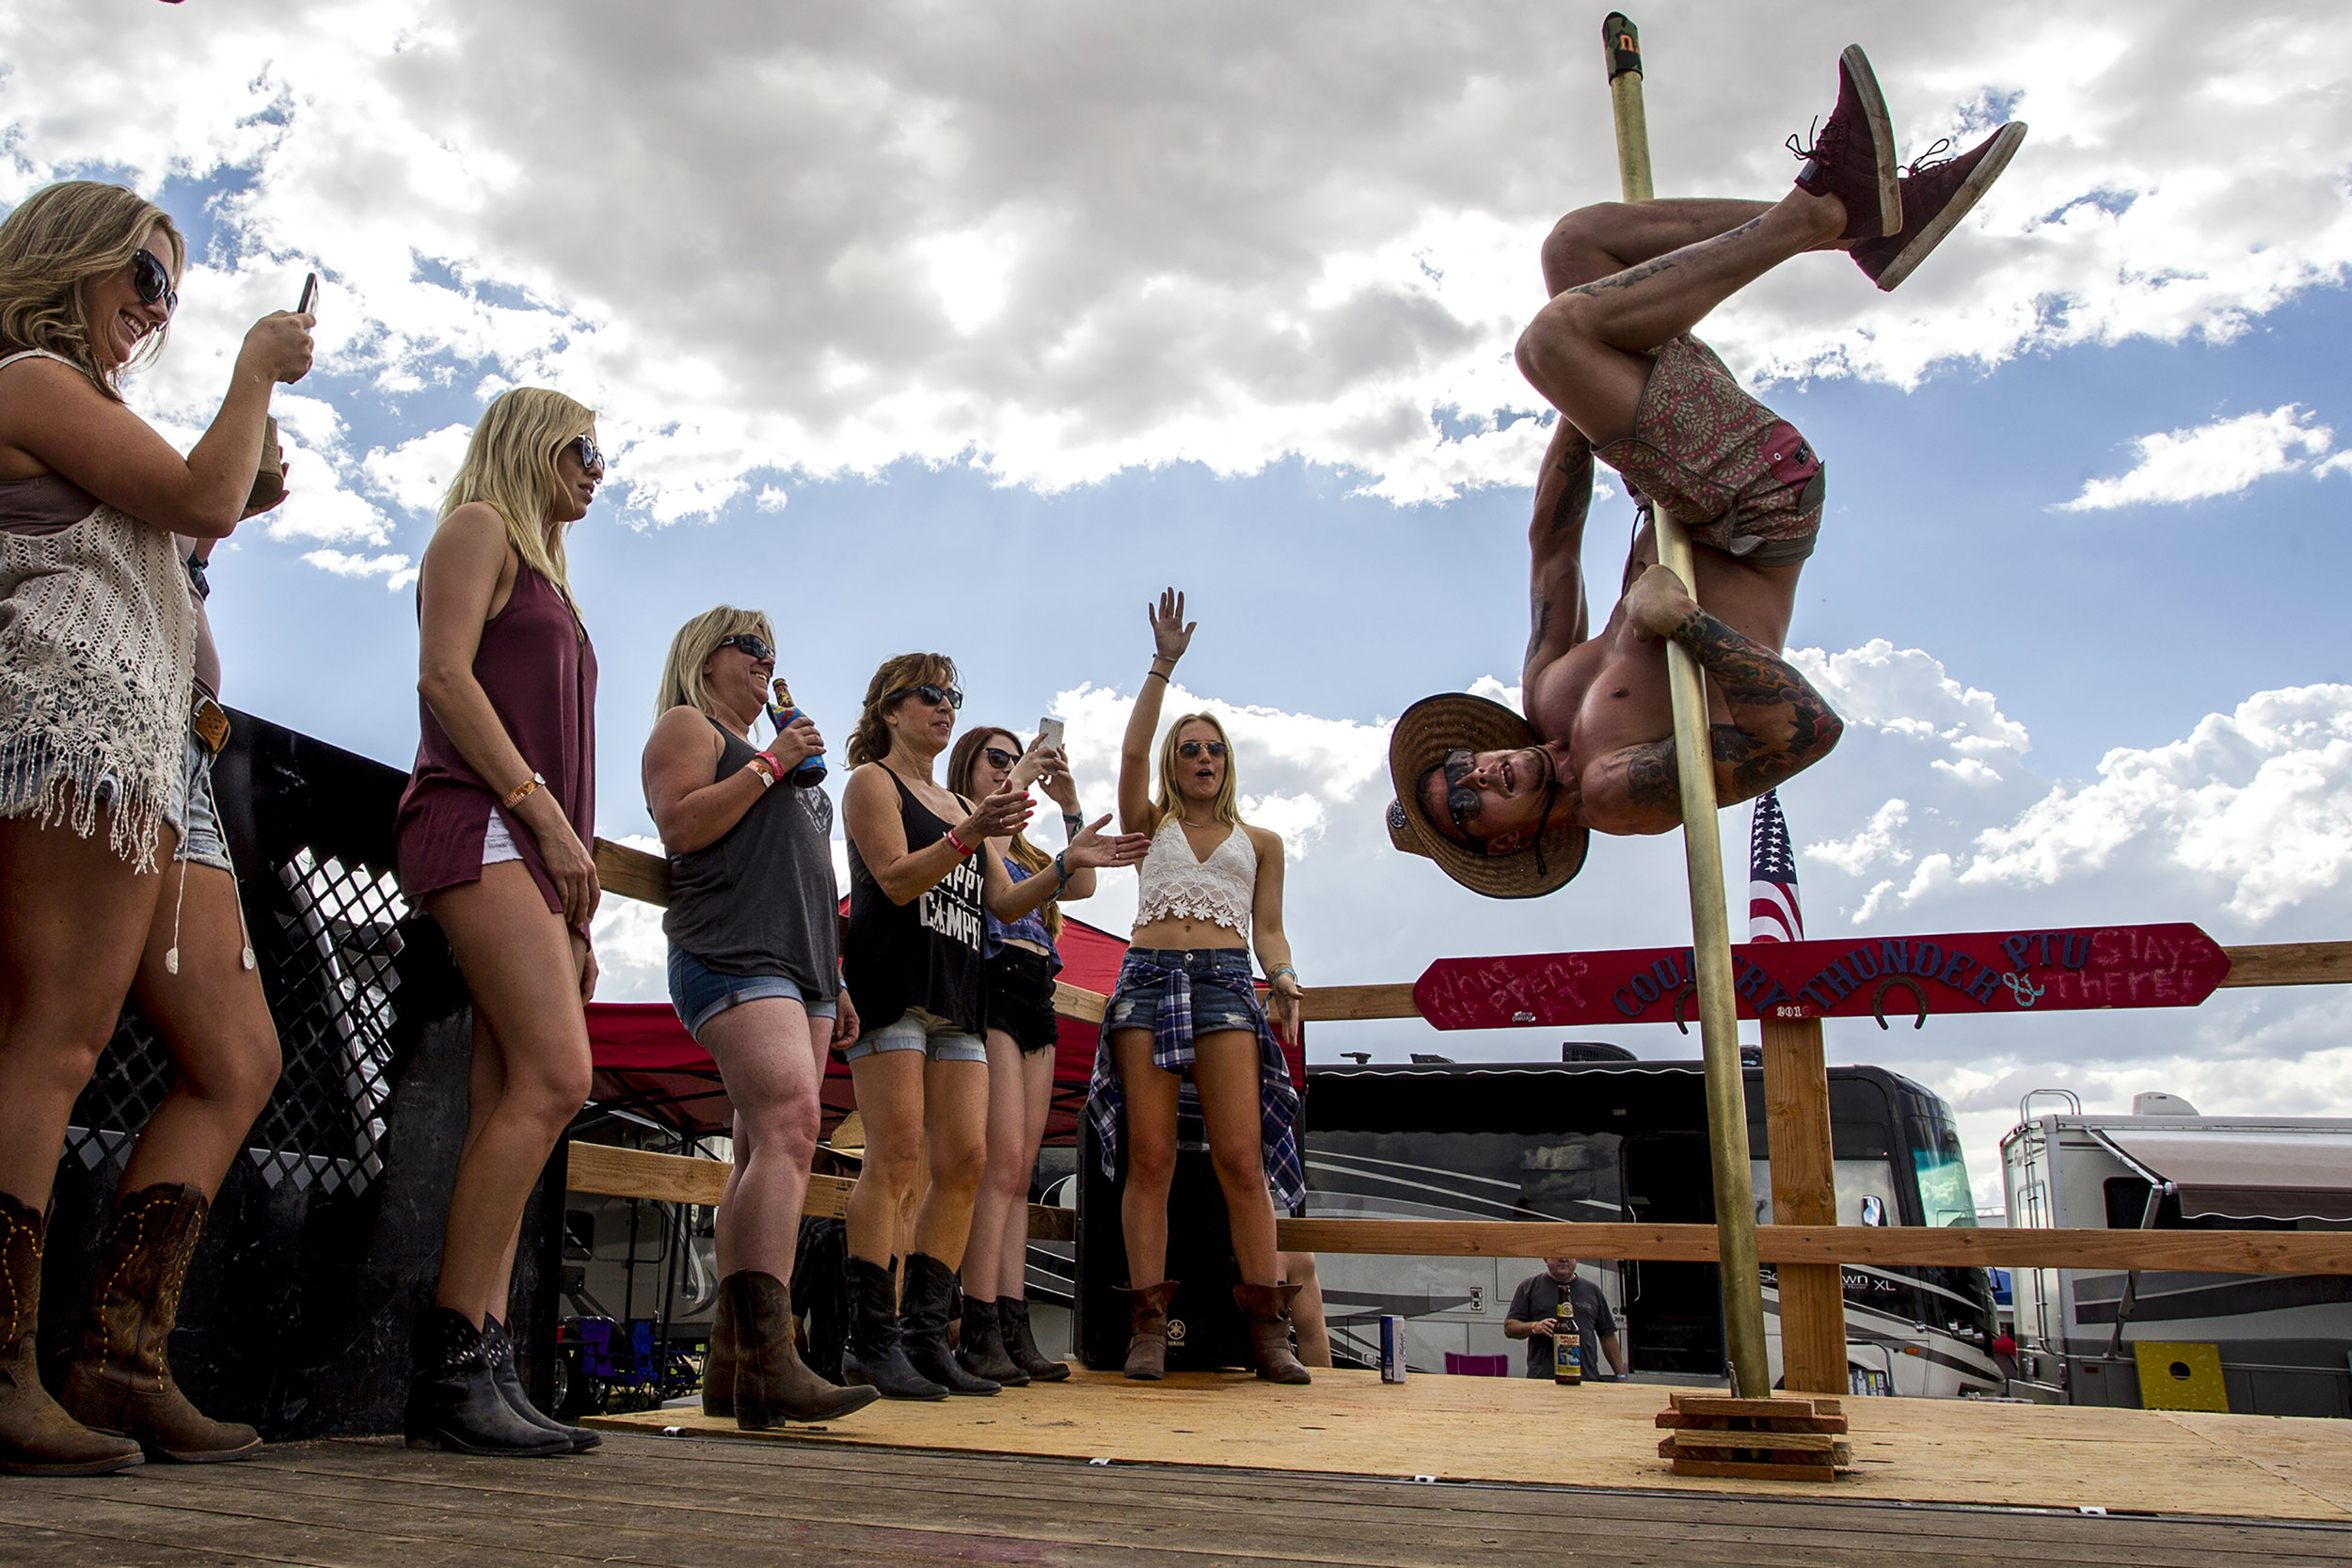 Michael Gereghcy goes upside-down on a stripper pole at a campsite during Country Thunder in Florence, Ariz.